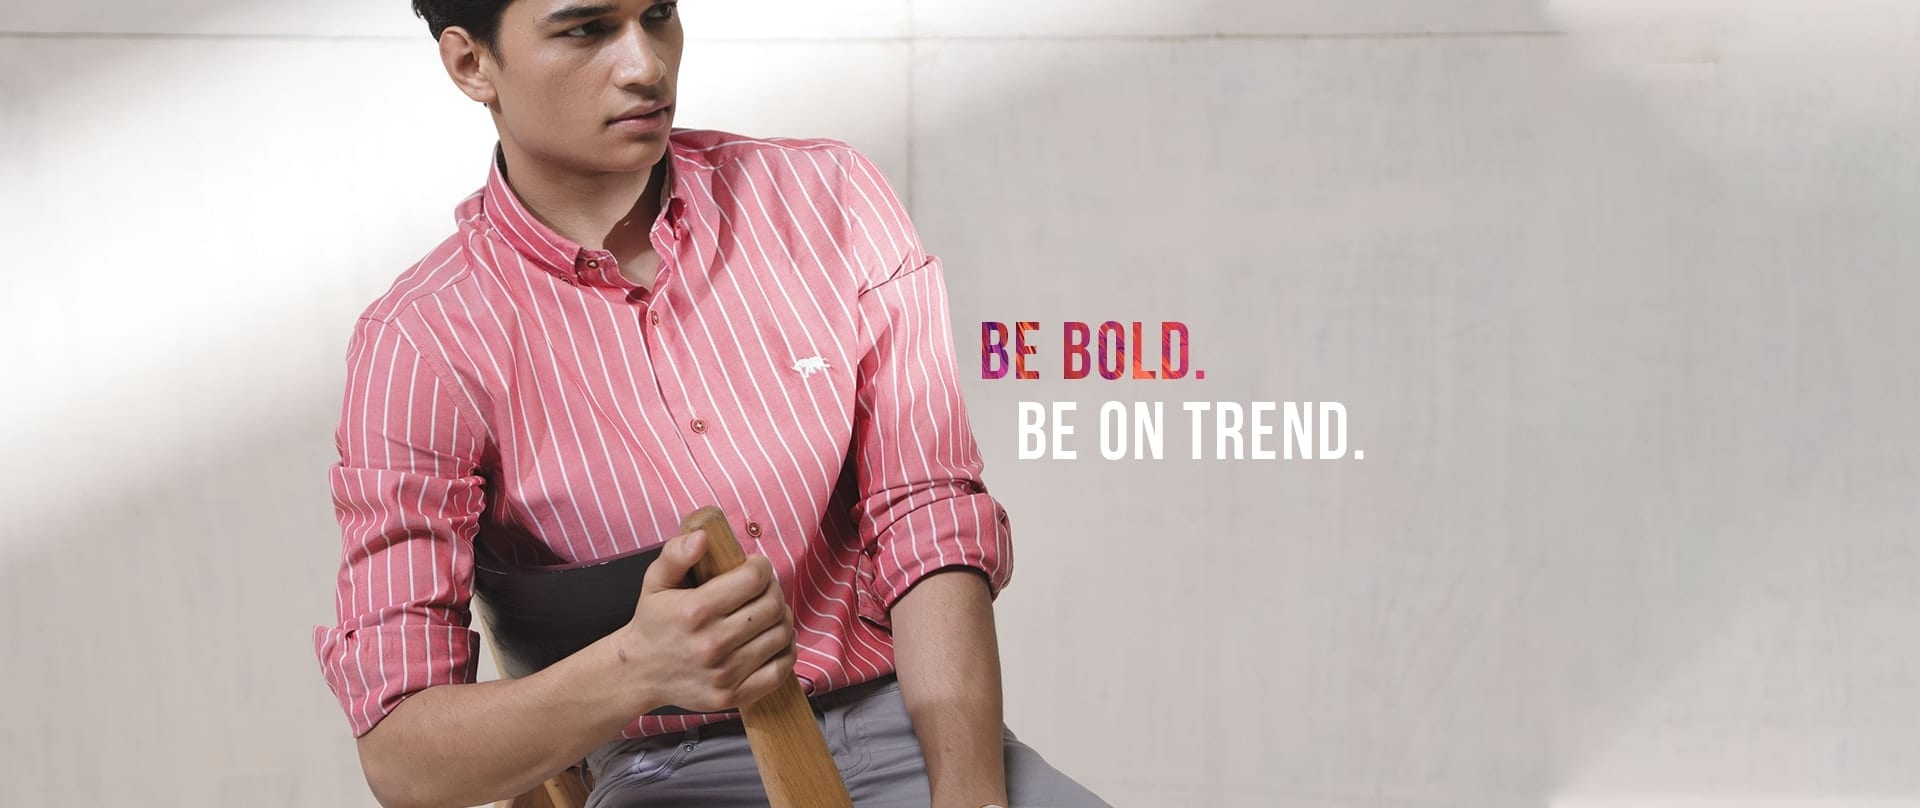 BE BOLD. BE ON TREND